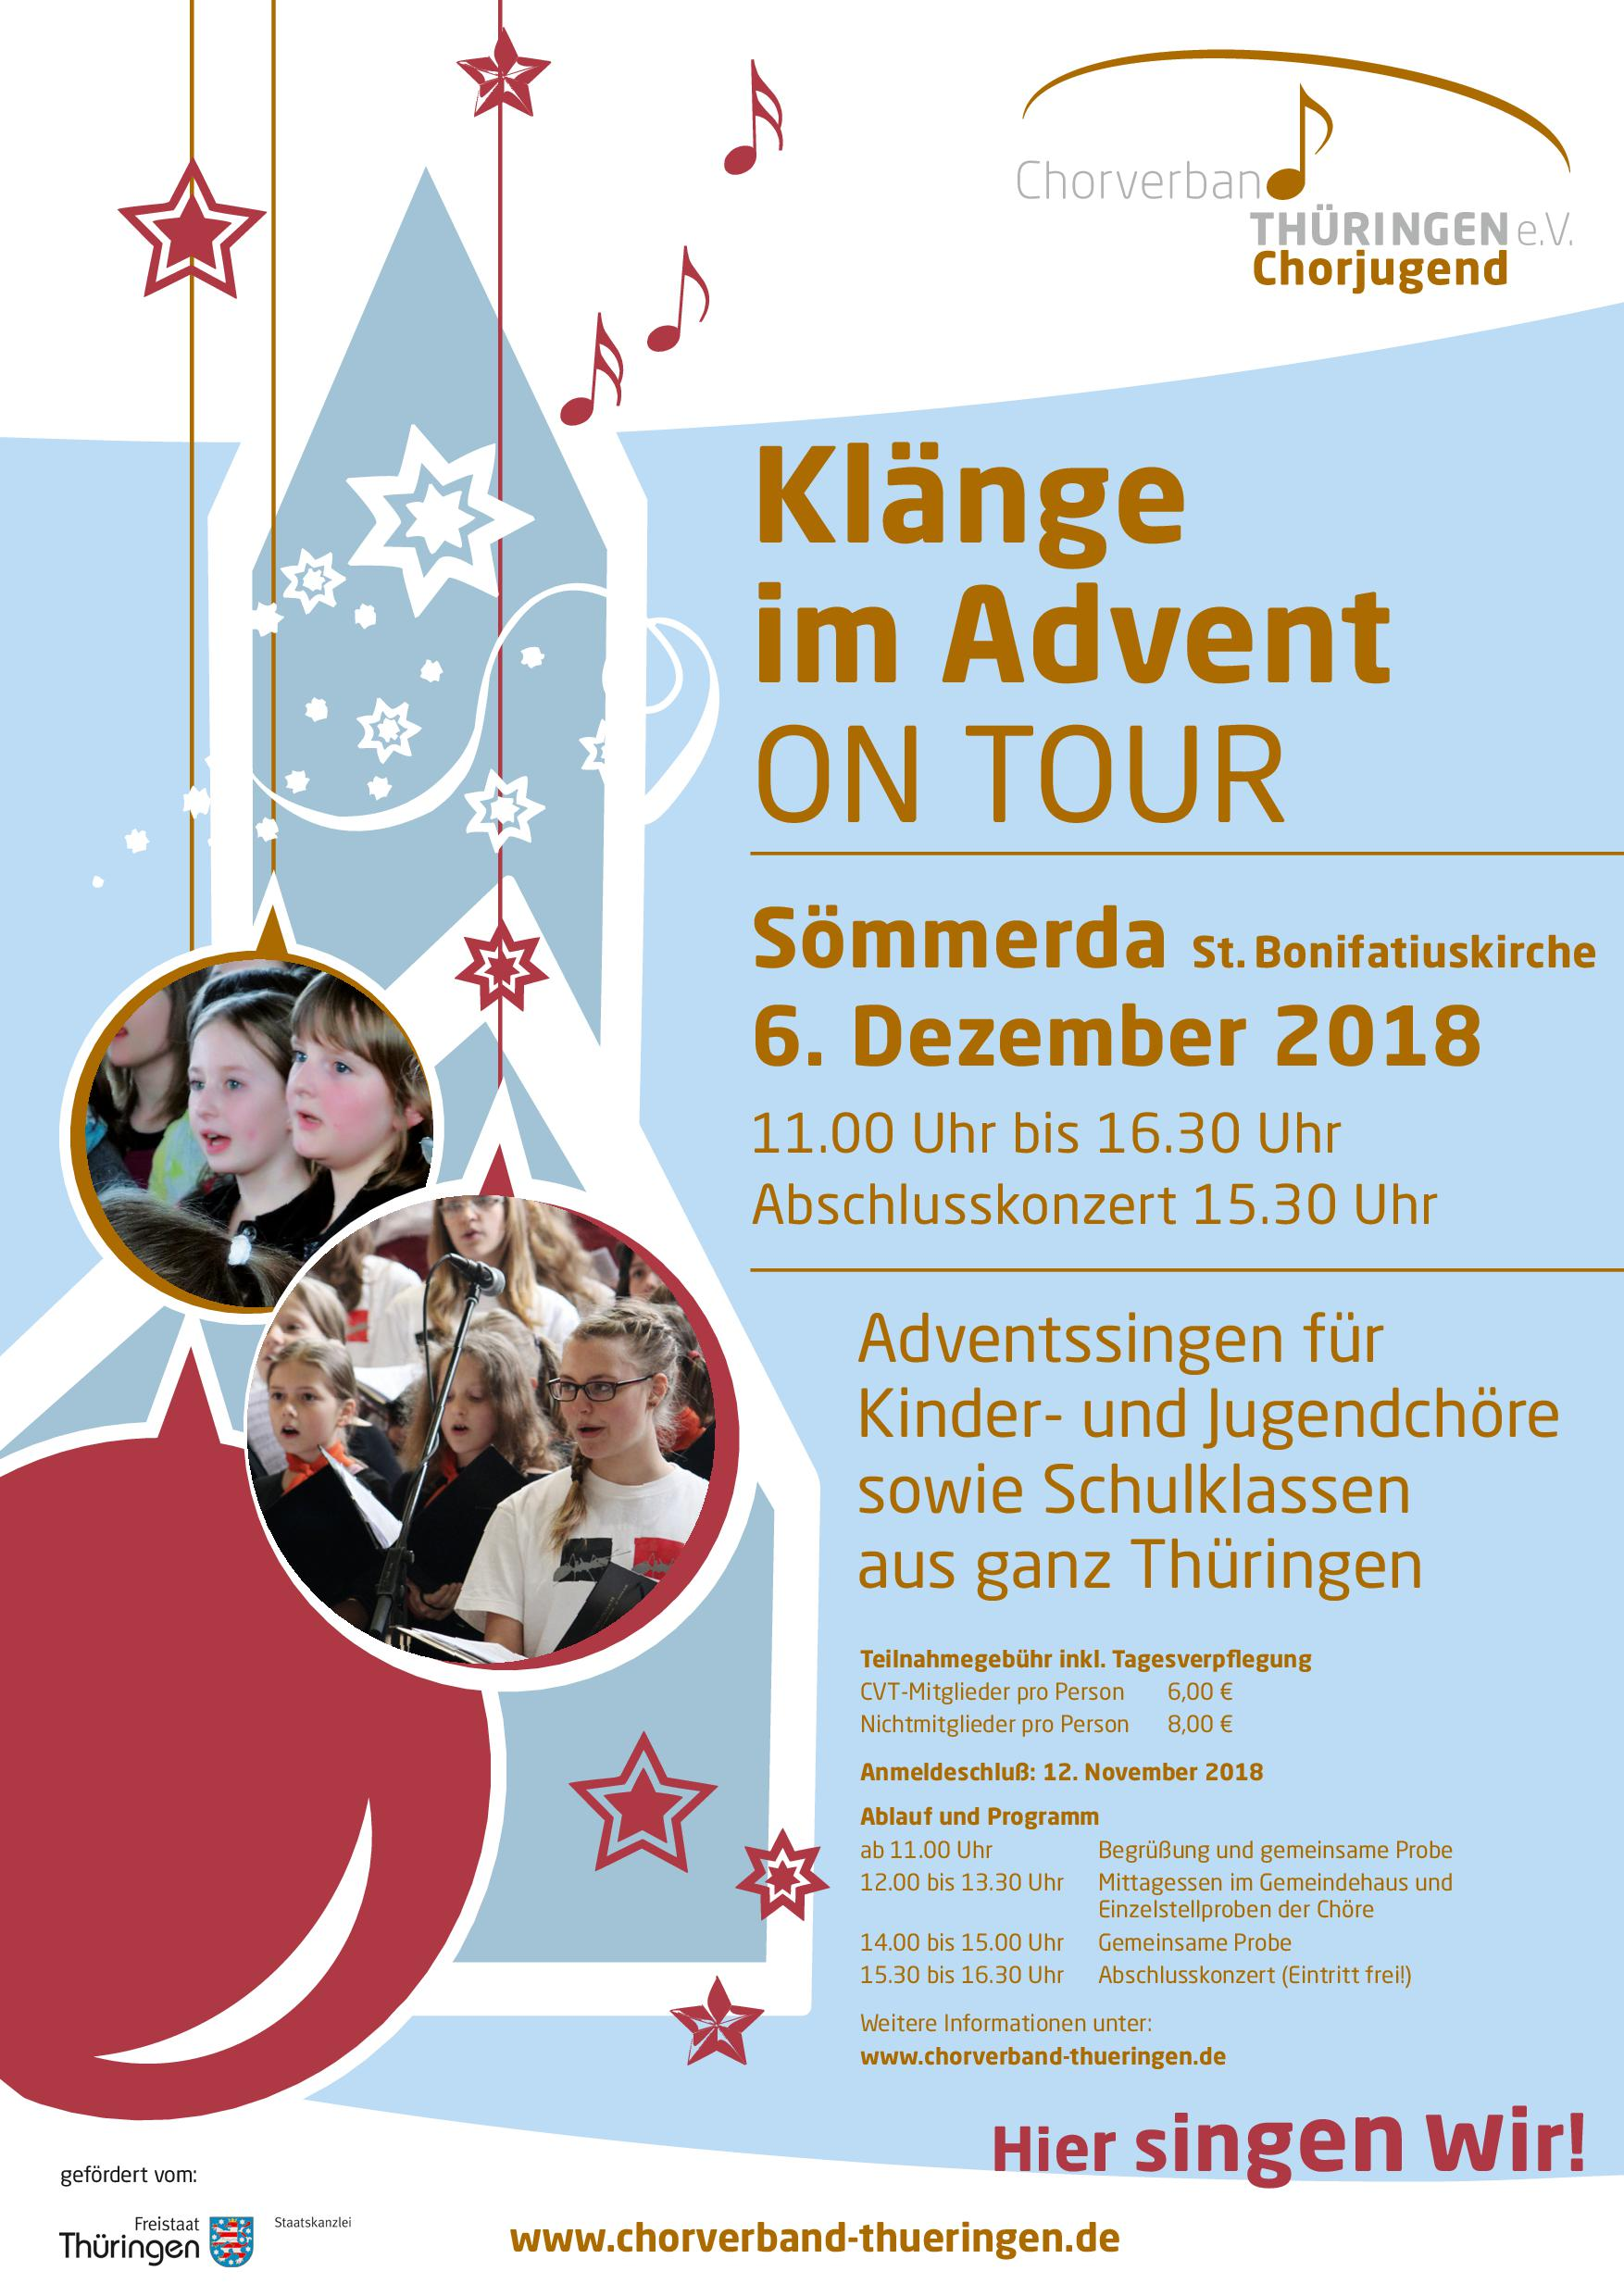 KiAoT_CVT Plakat A3 Advent_18_online